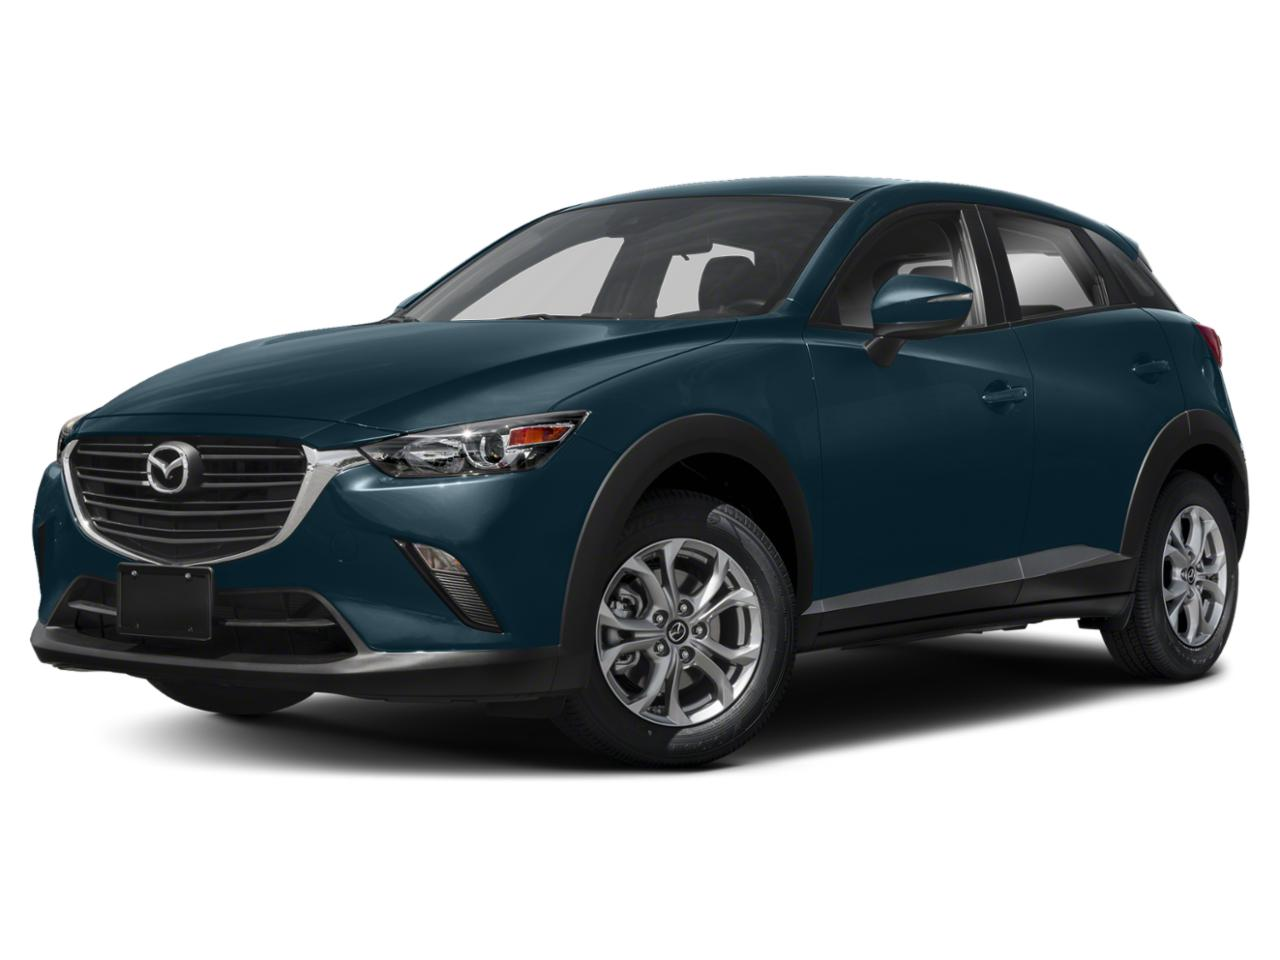 2020 Mazda CX-3 Vehicle Photo in Rockville, MD 20852